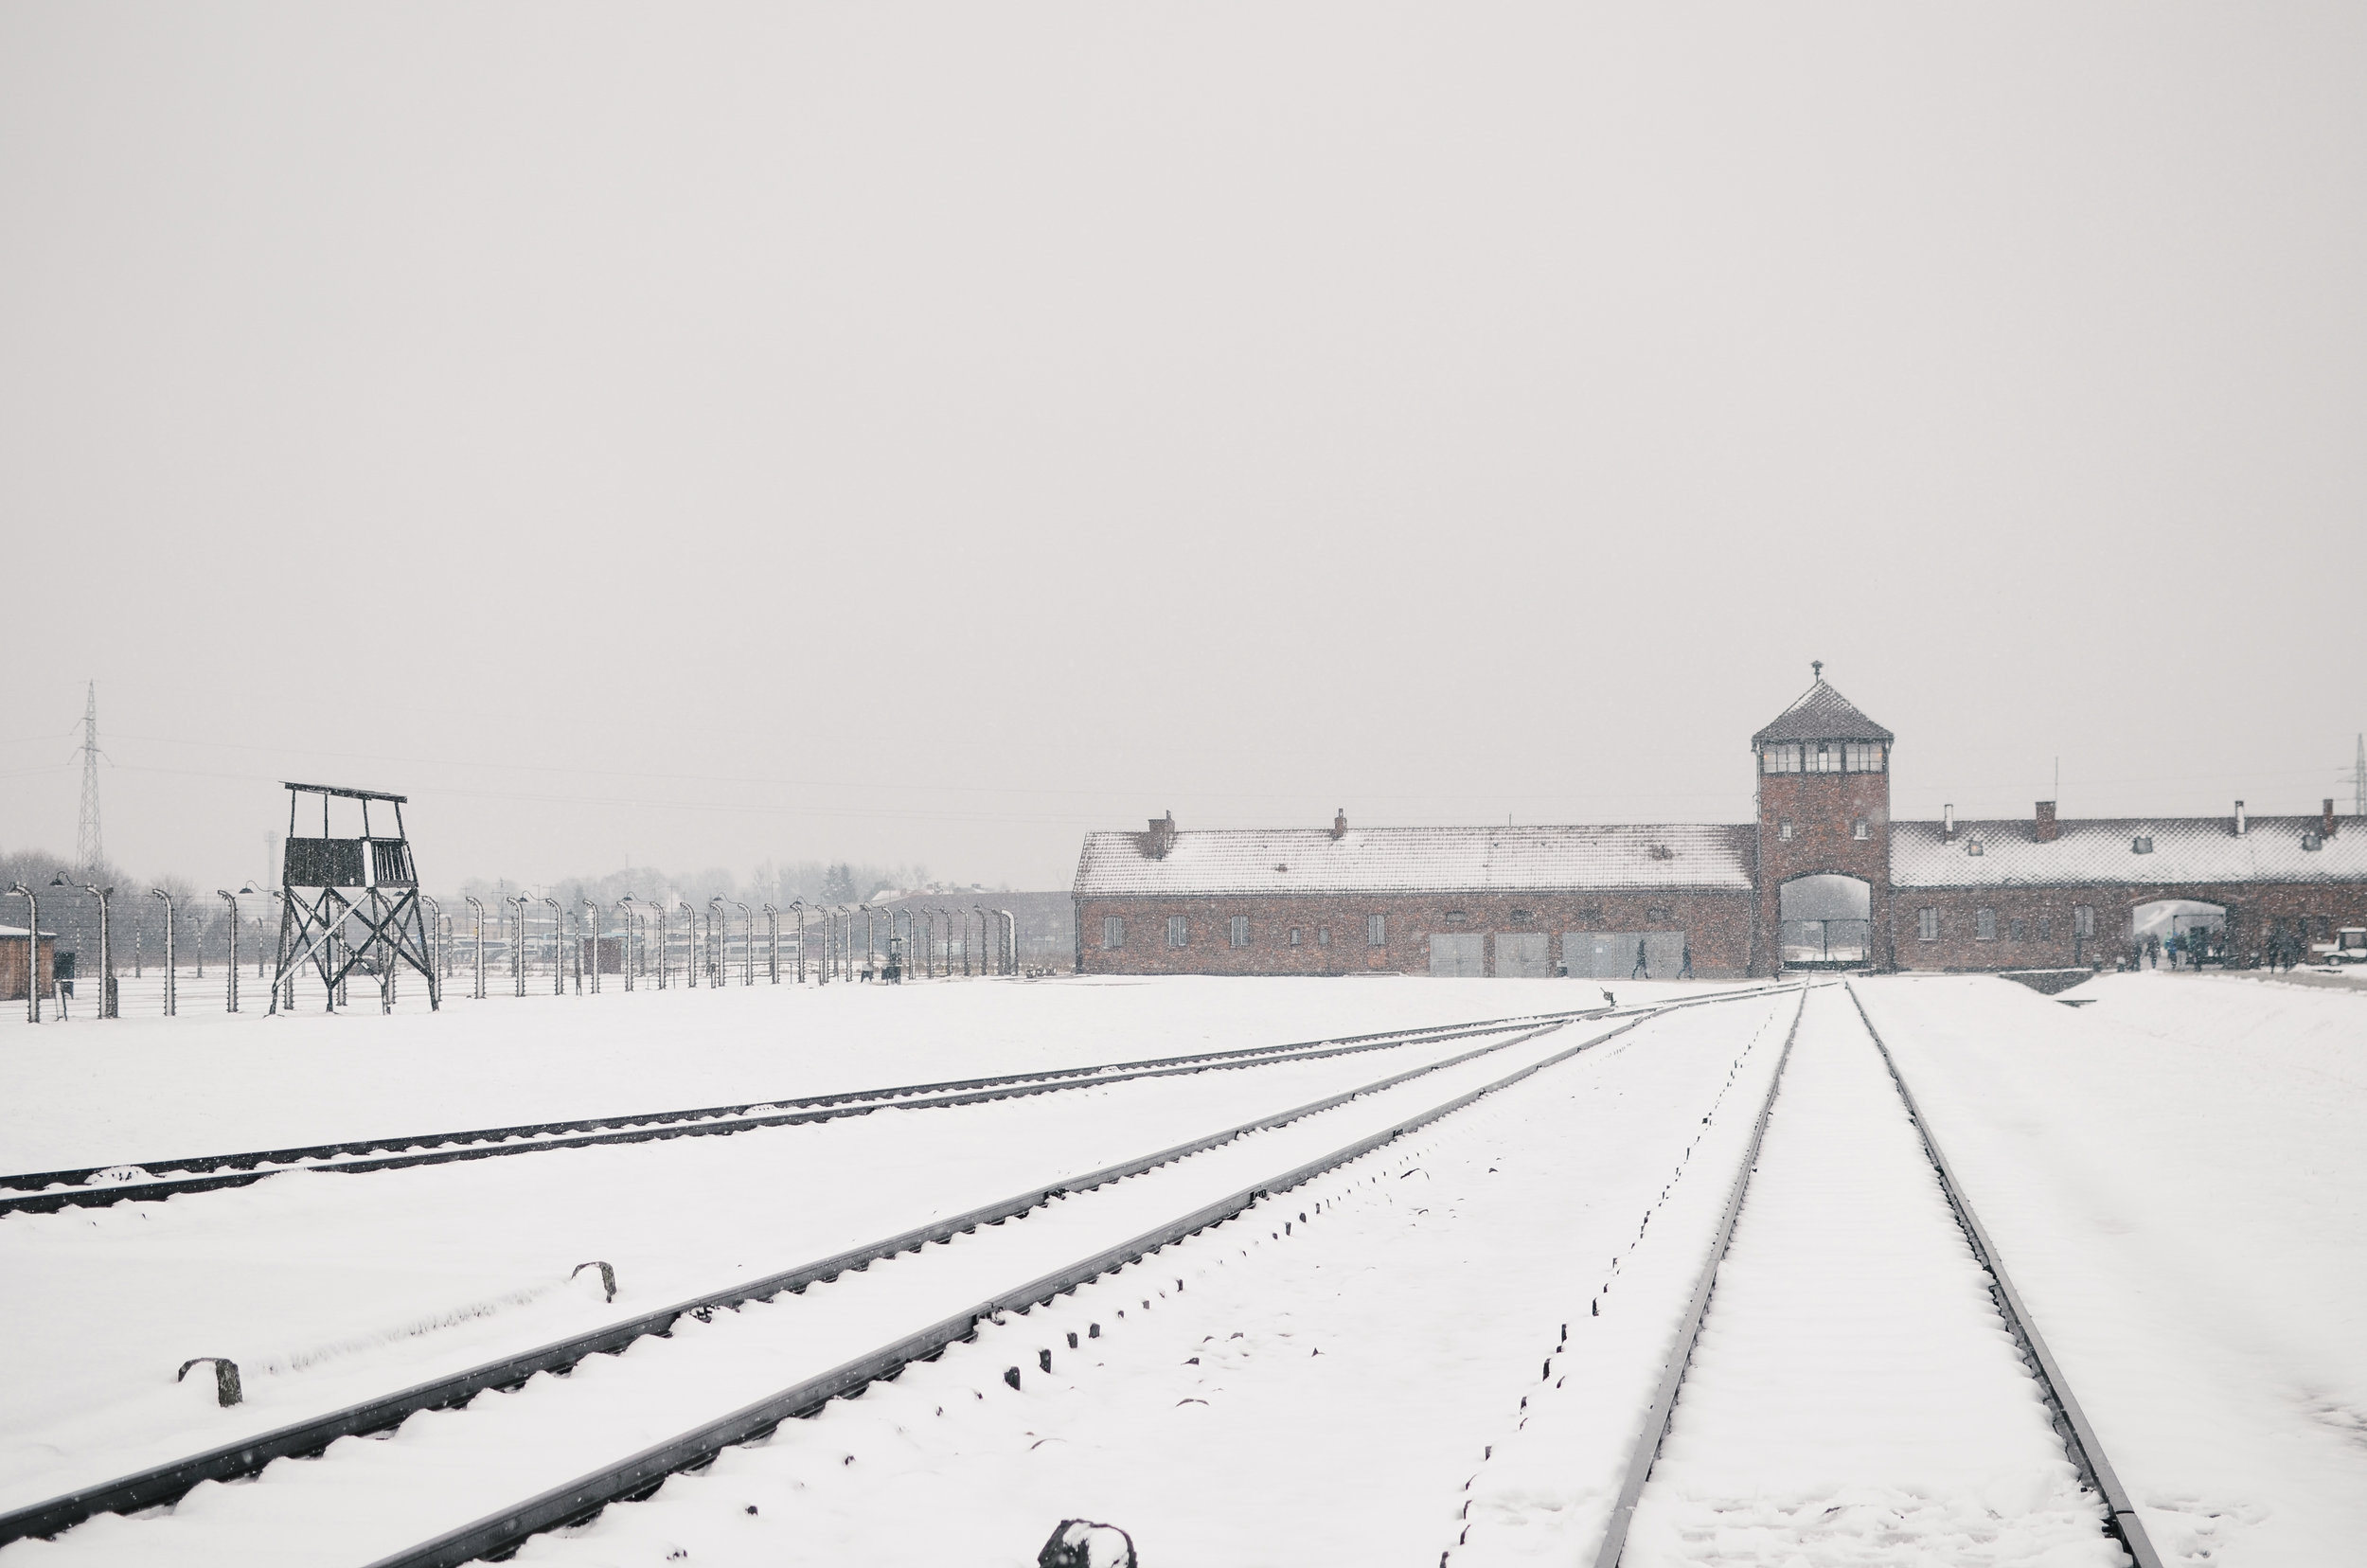 ^^ the train track where prisoners arrived. the young and healthy were told to go in one direction, and the sick or elderly were sent immediately to gas chambers